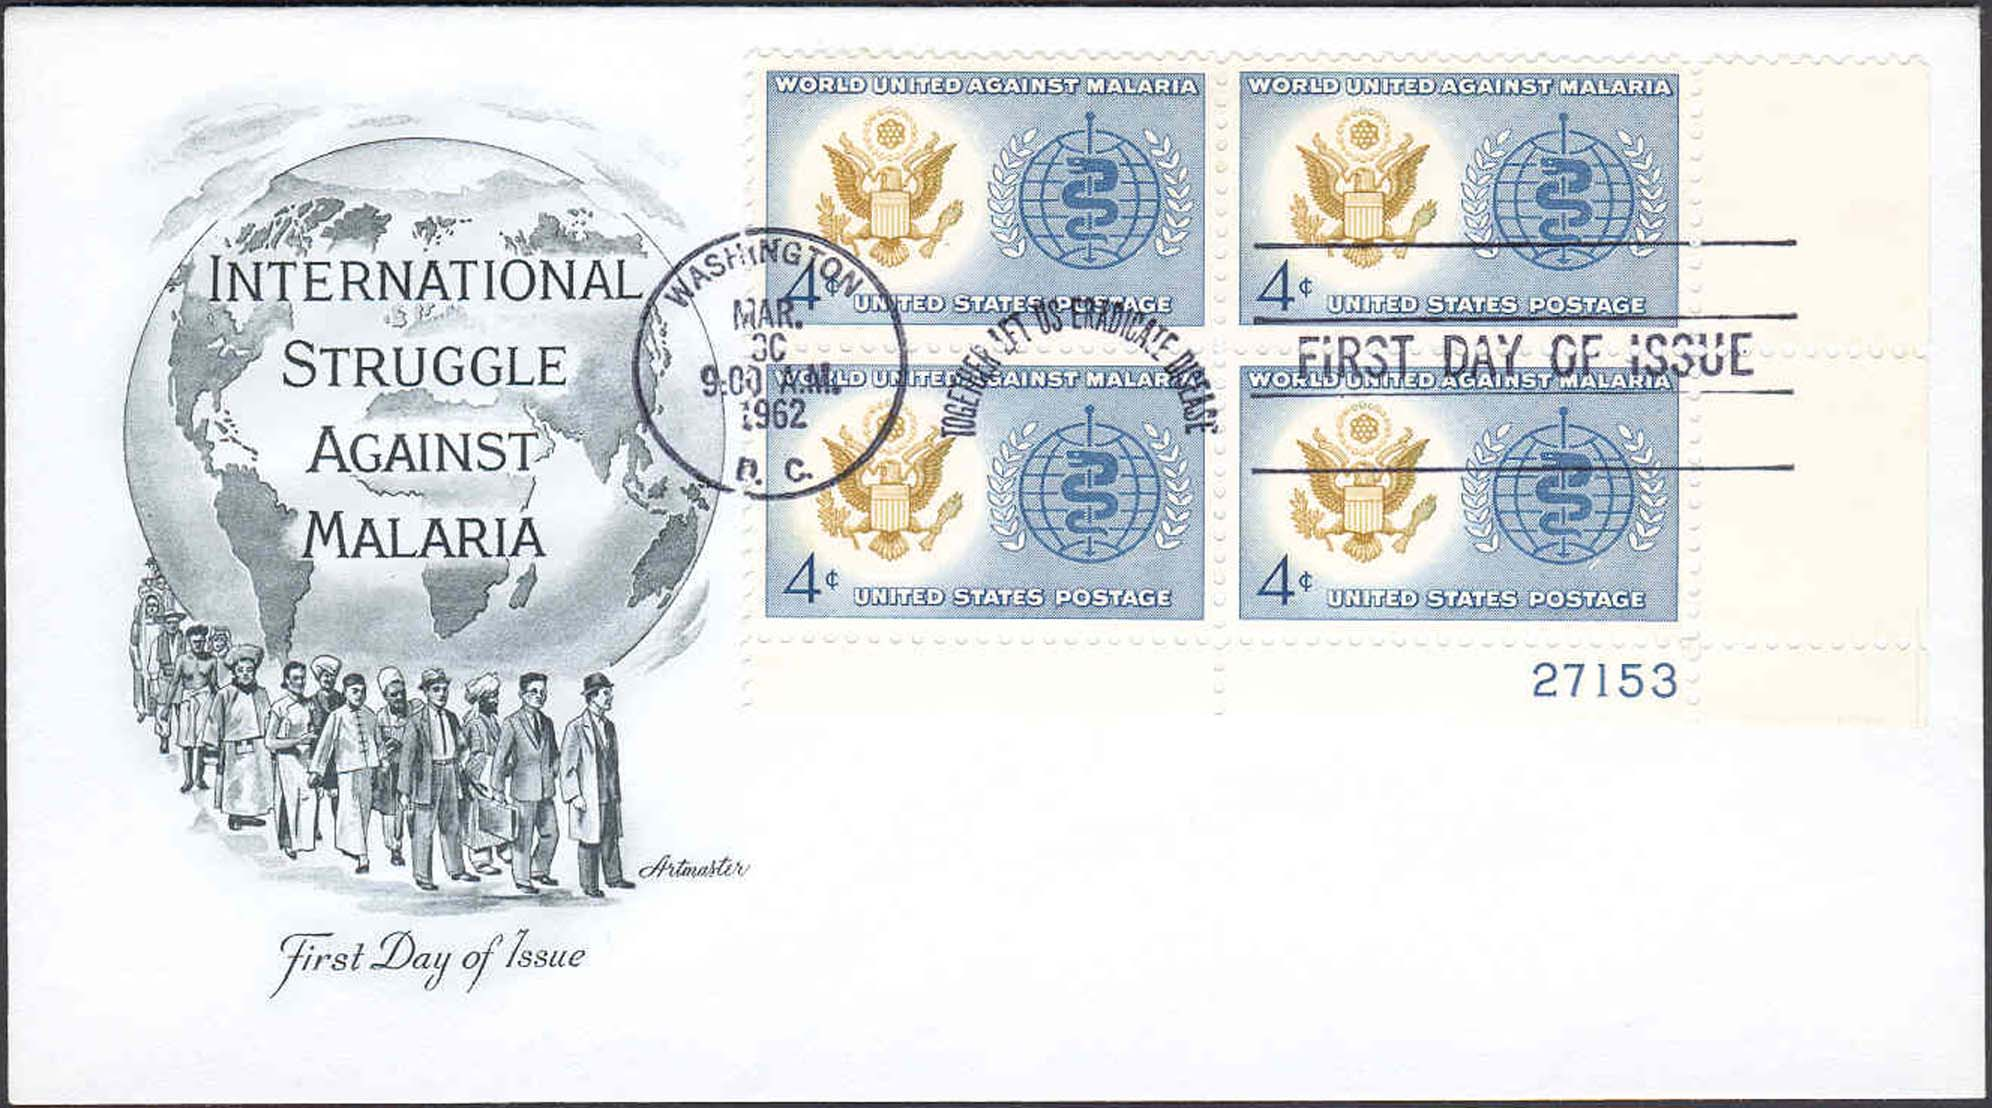 United States Scott 1194 On FDC With Artmaster Cachet (Plate Block 21753 Lower Left)